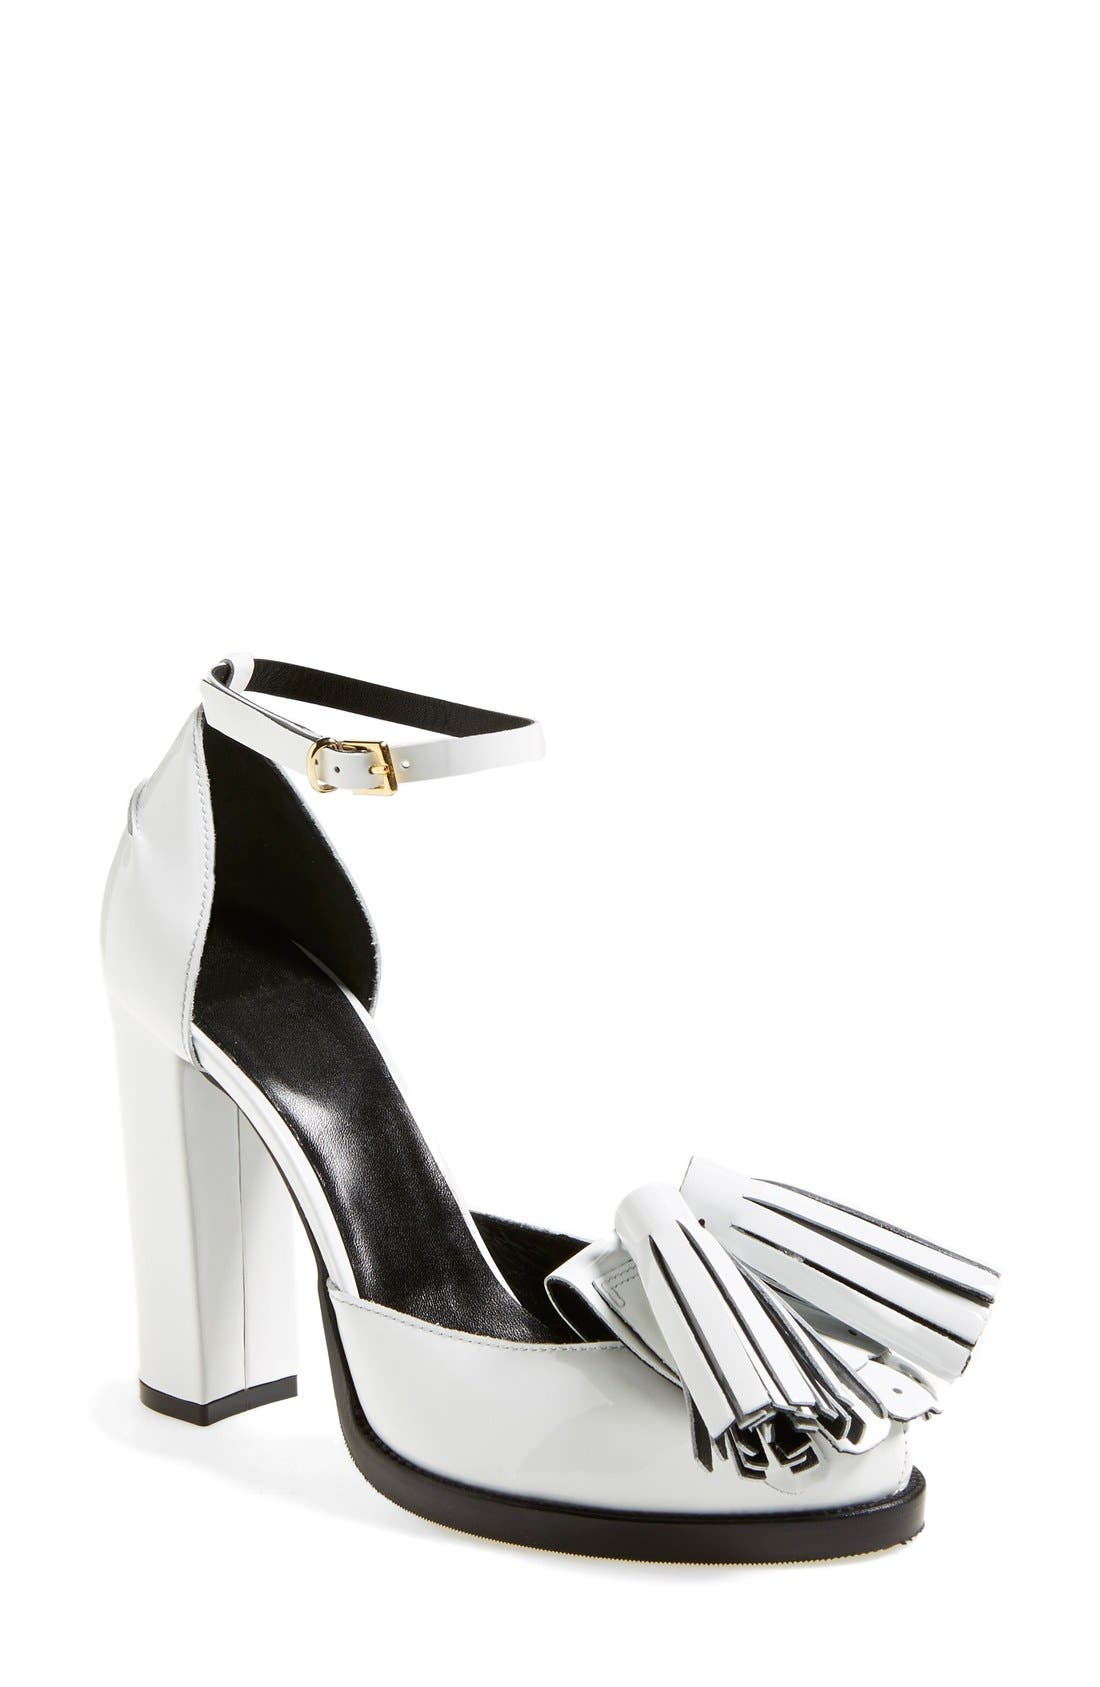 Main Image - MSGM Ankle Strap Pump (Women)